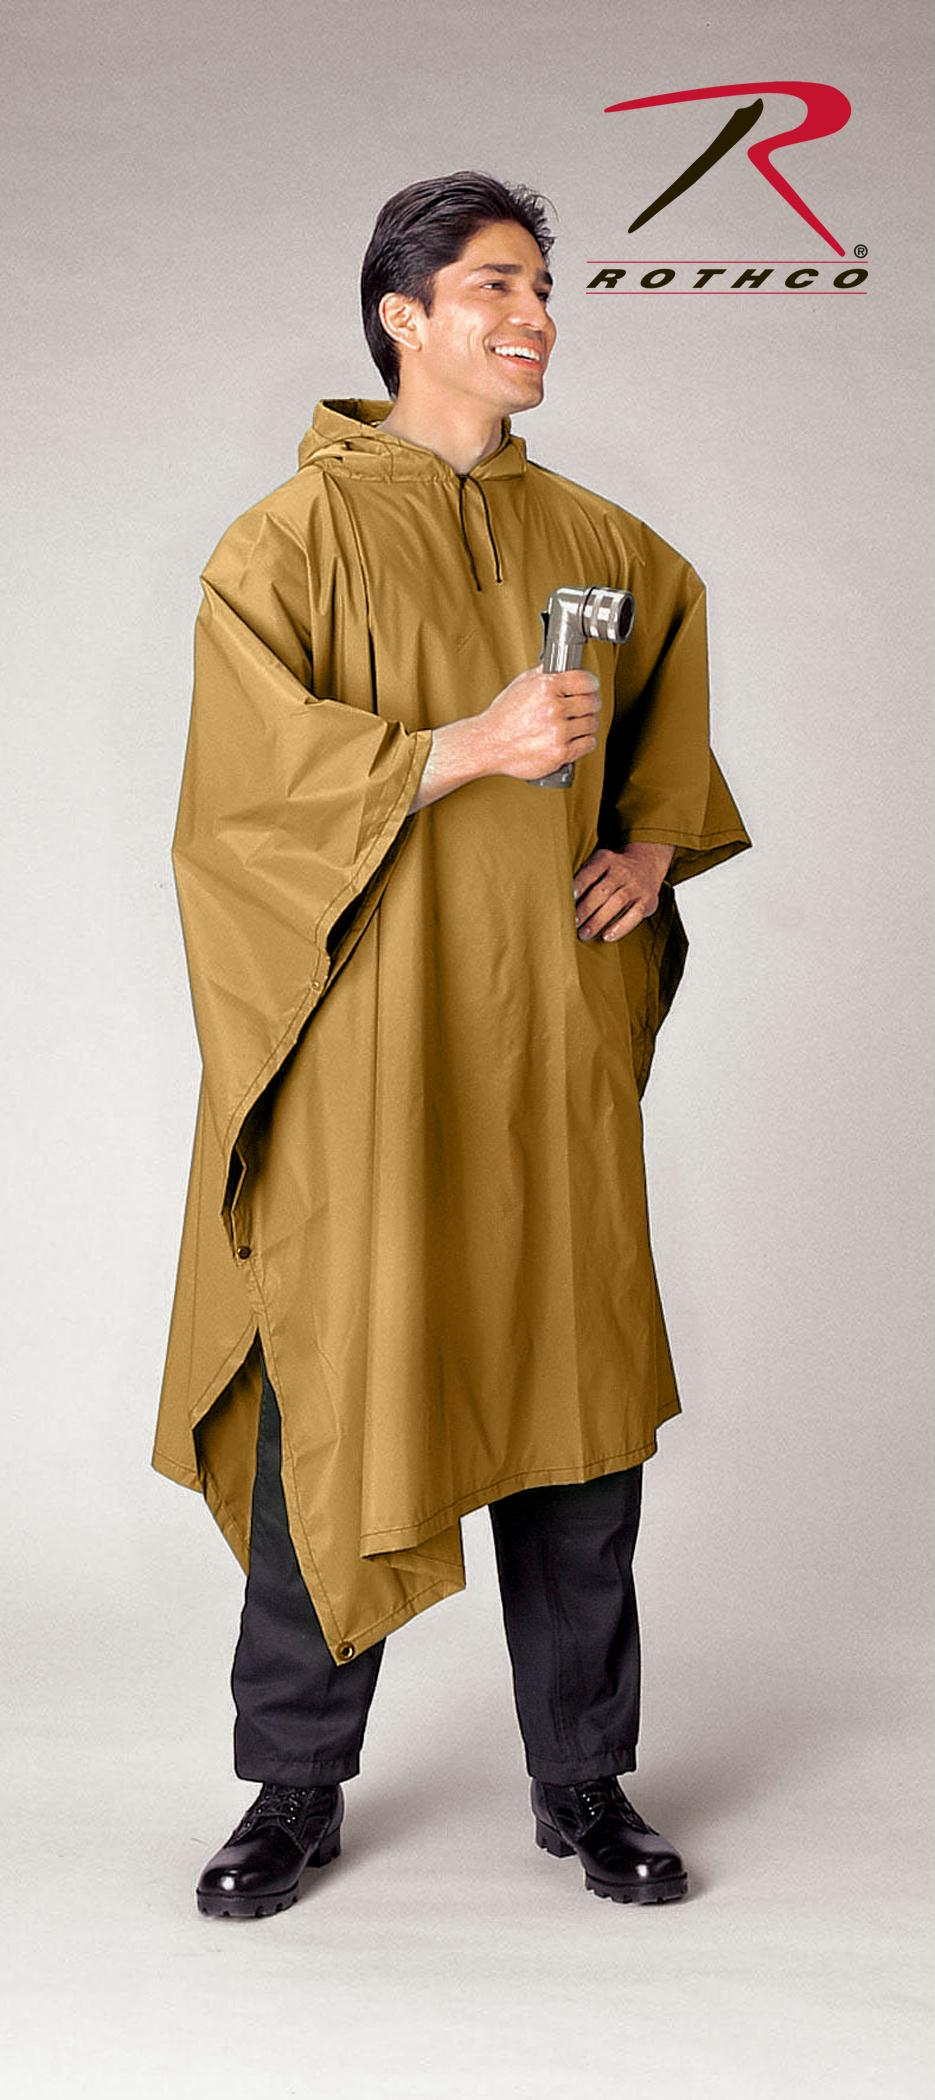 Rothco G.I. Type Military Rip-Stop Poncho - Coyote Brown